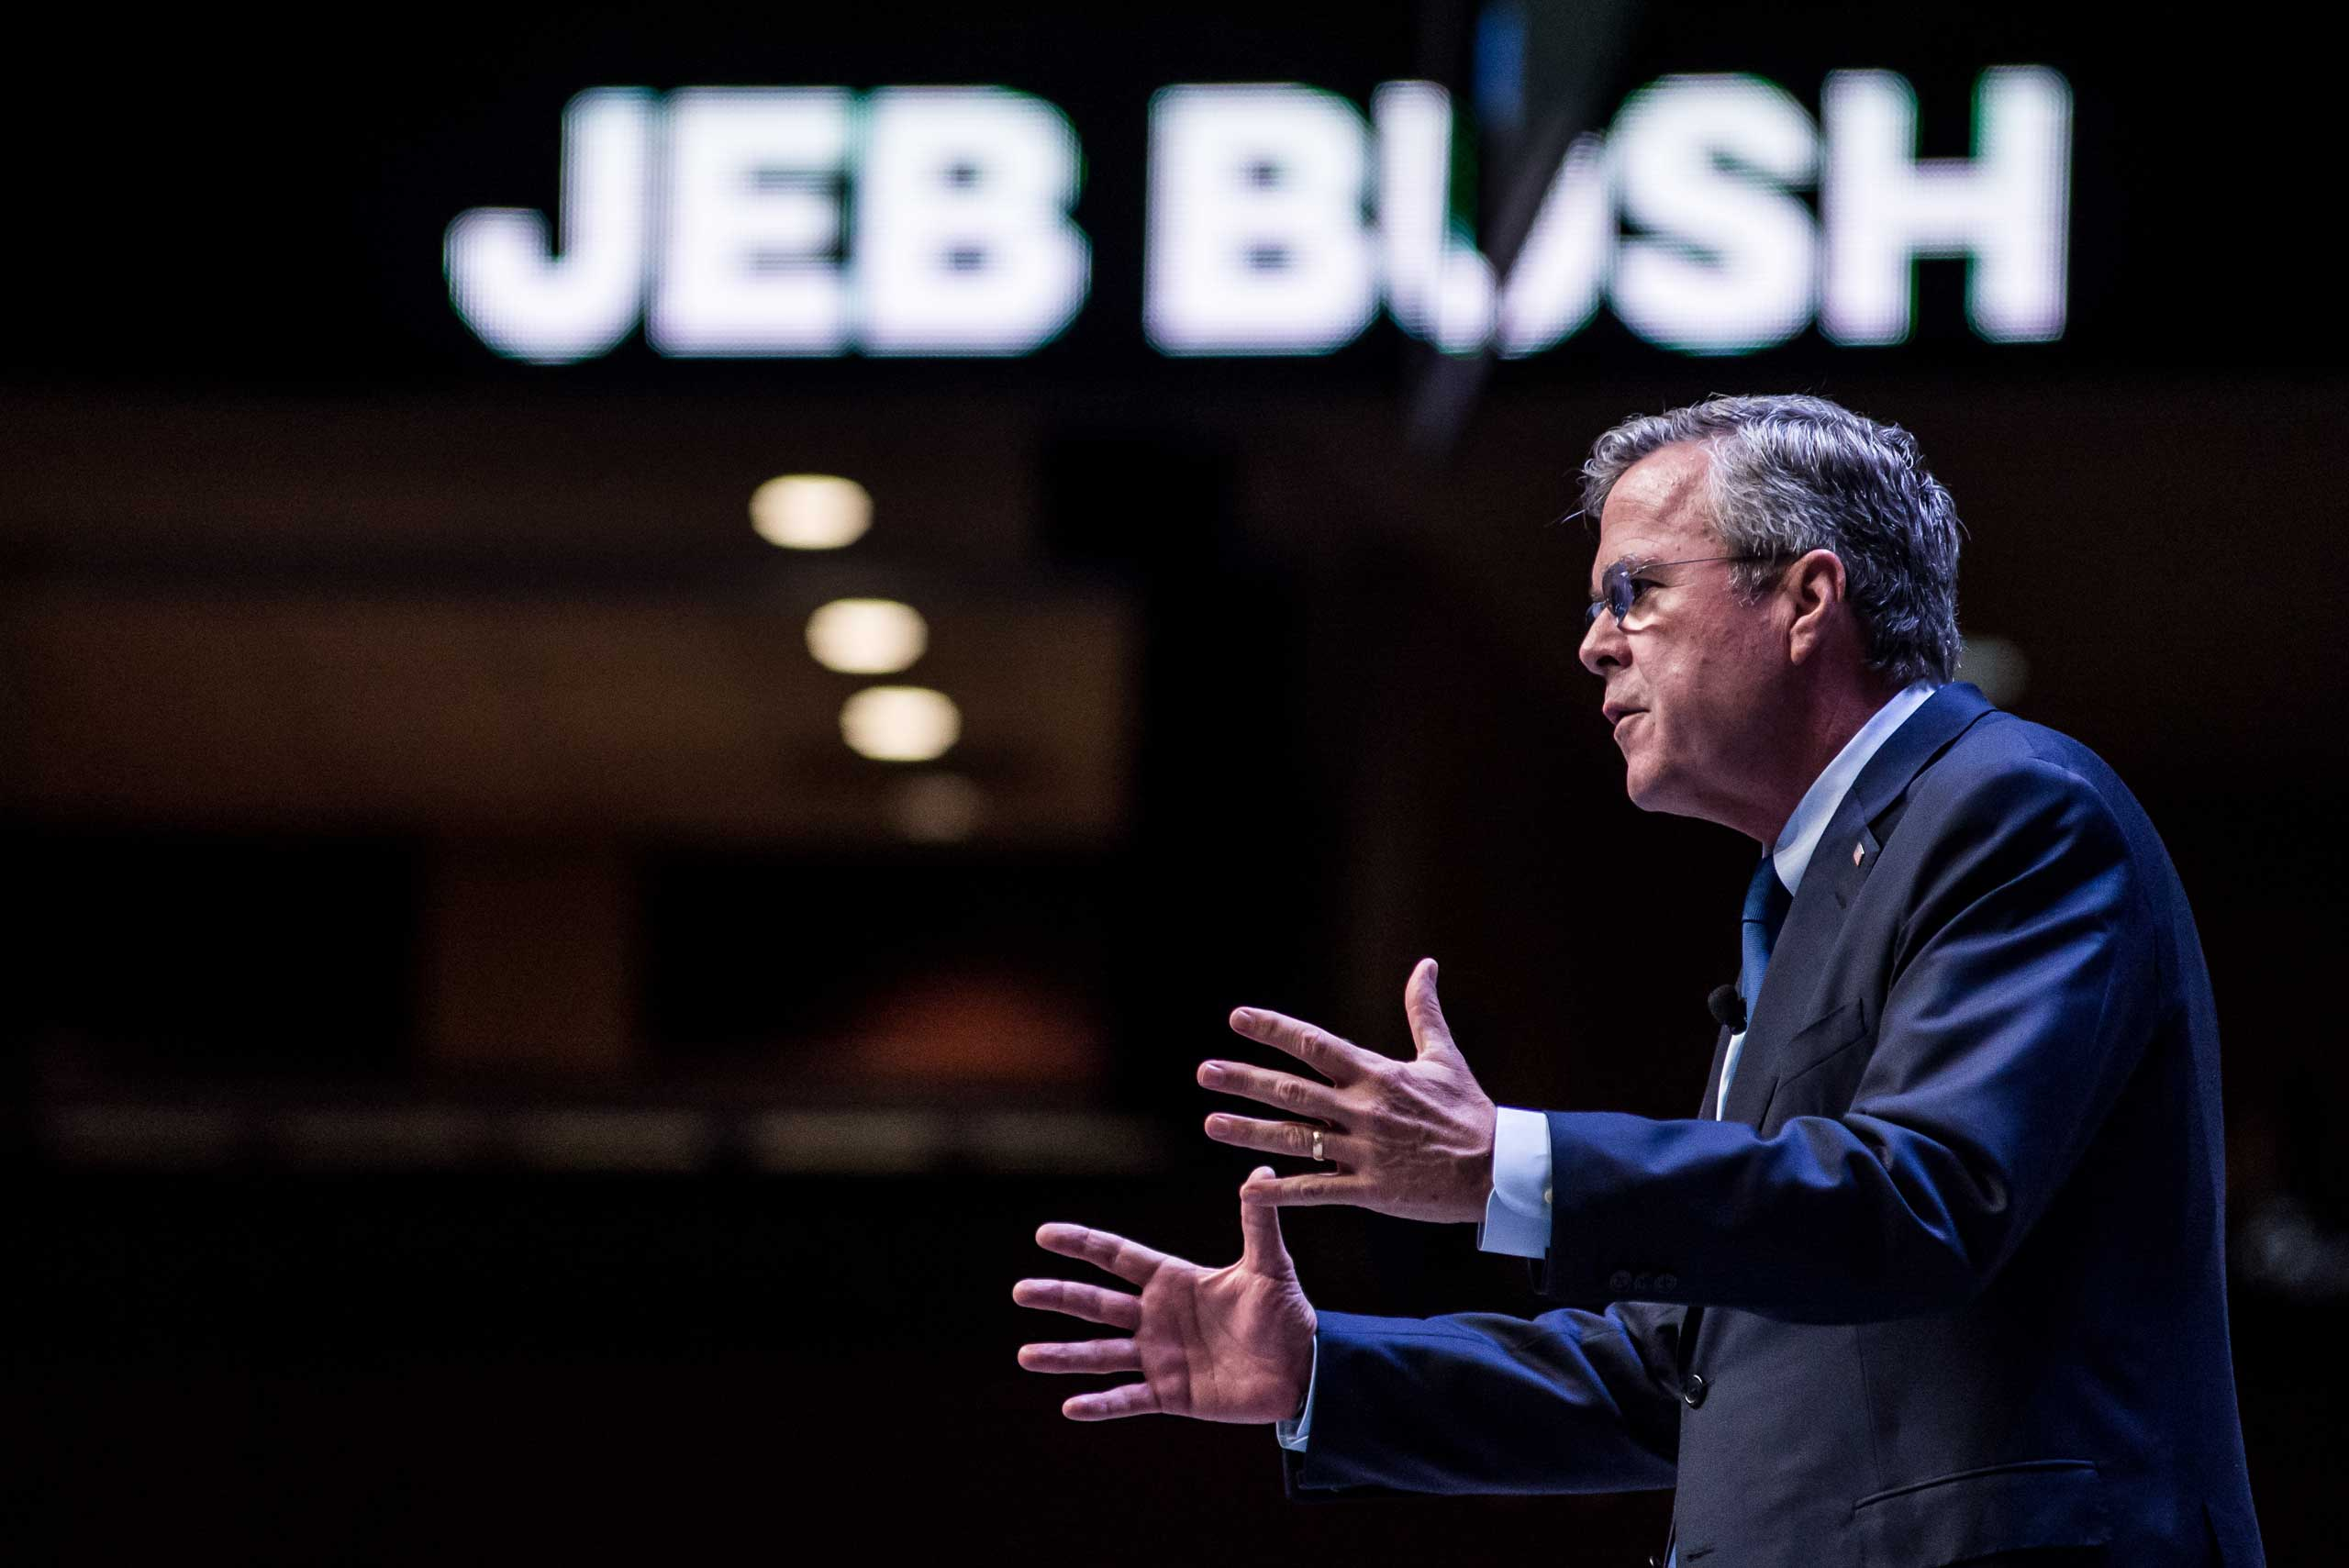 Former Florida Governor and republican presidential candidate Jeb Bush speaks to voters at the Heritage Action Presidential Candidate Forum  in Greenville, South Carolina, Sept. 18, 2015